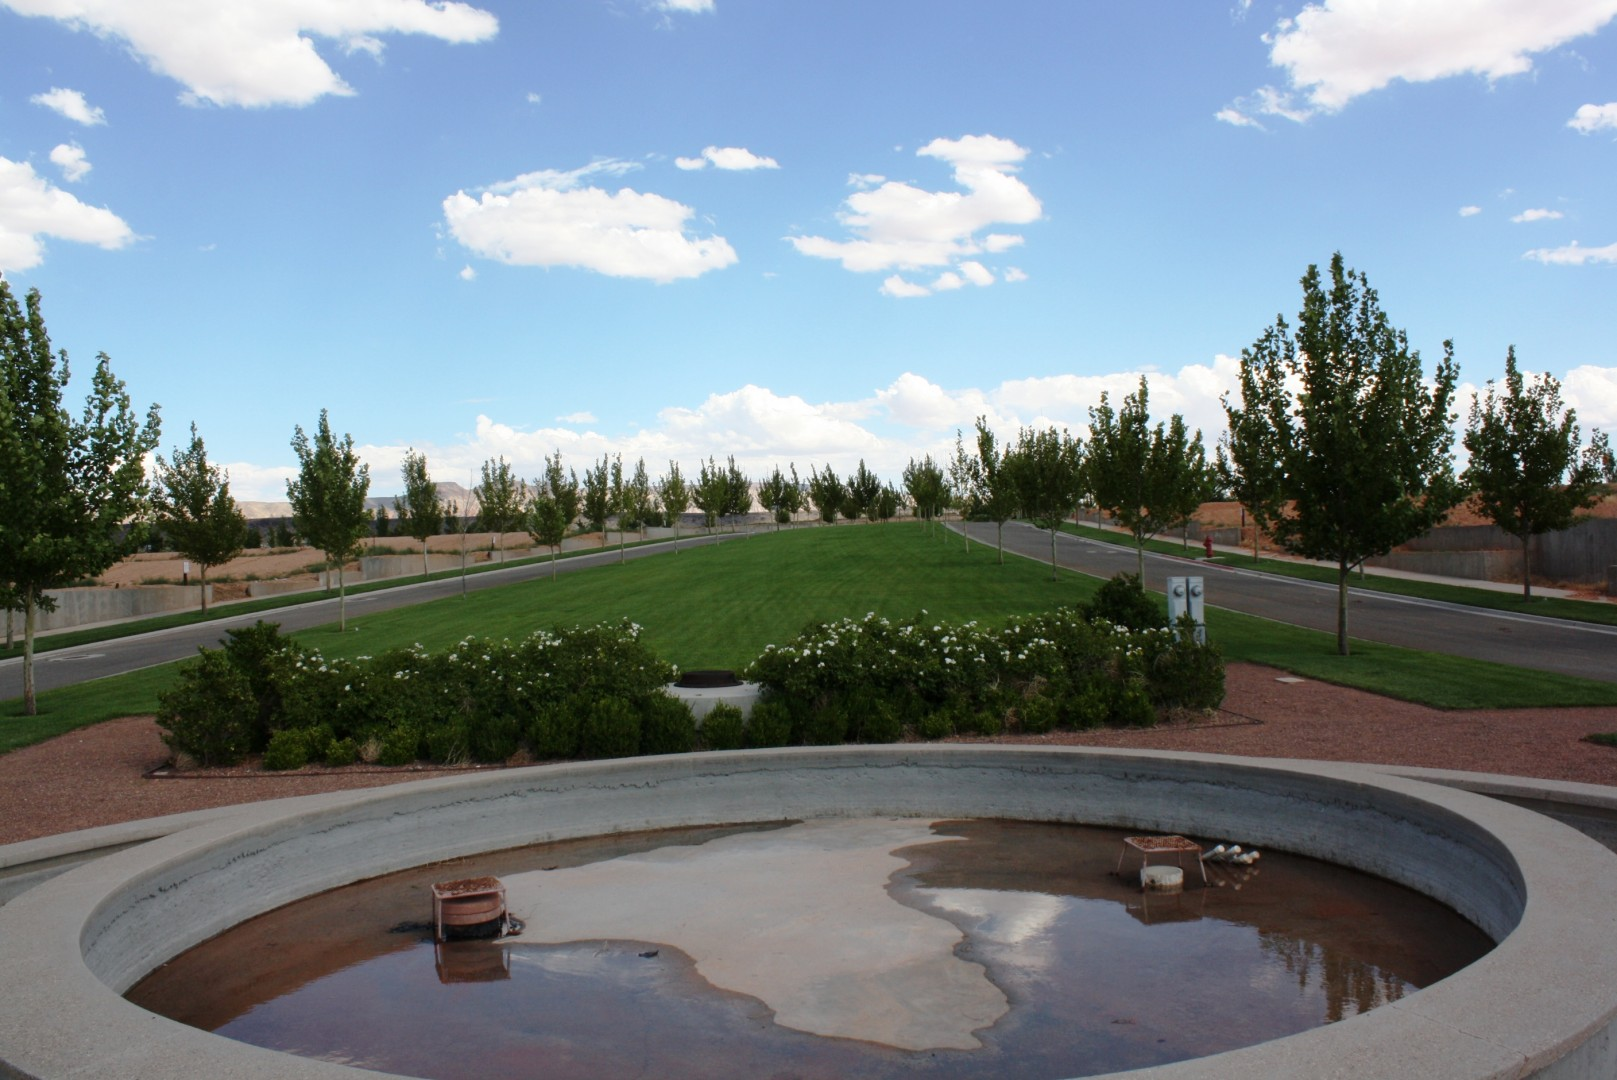 A nearly-empty fountain greets prospective home buyers in Elim Valley's tree-lined streets, July 29, 2013 | Photo by Reuben Wadsworth, St. George News.